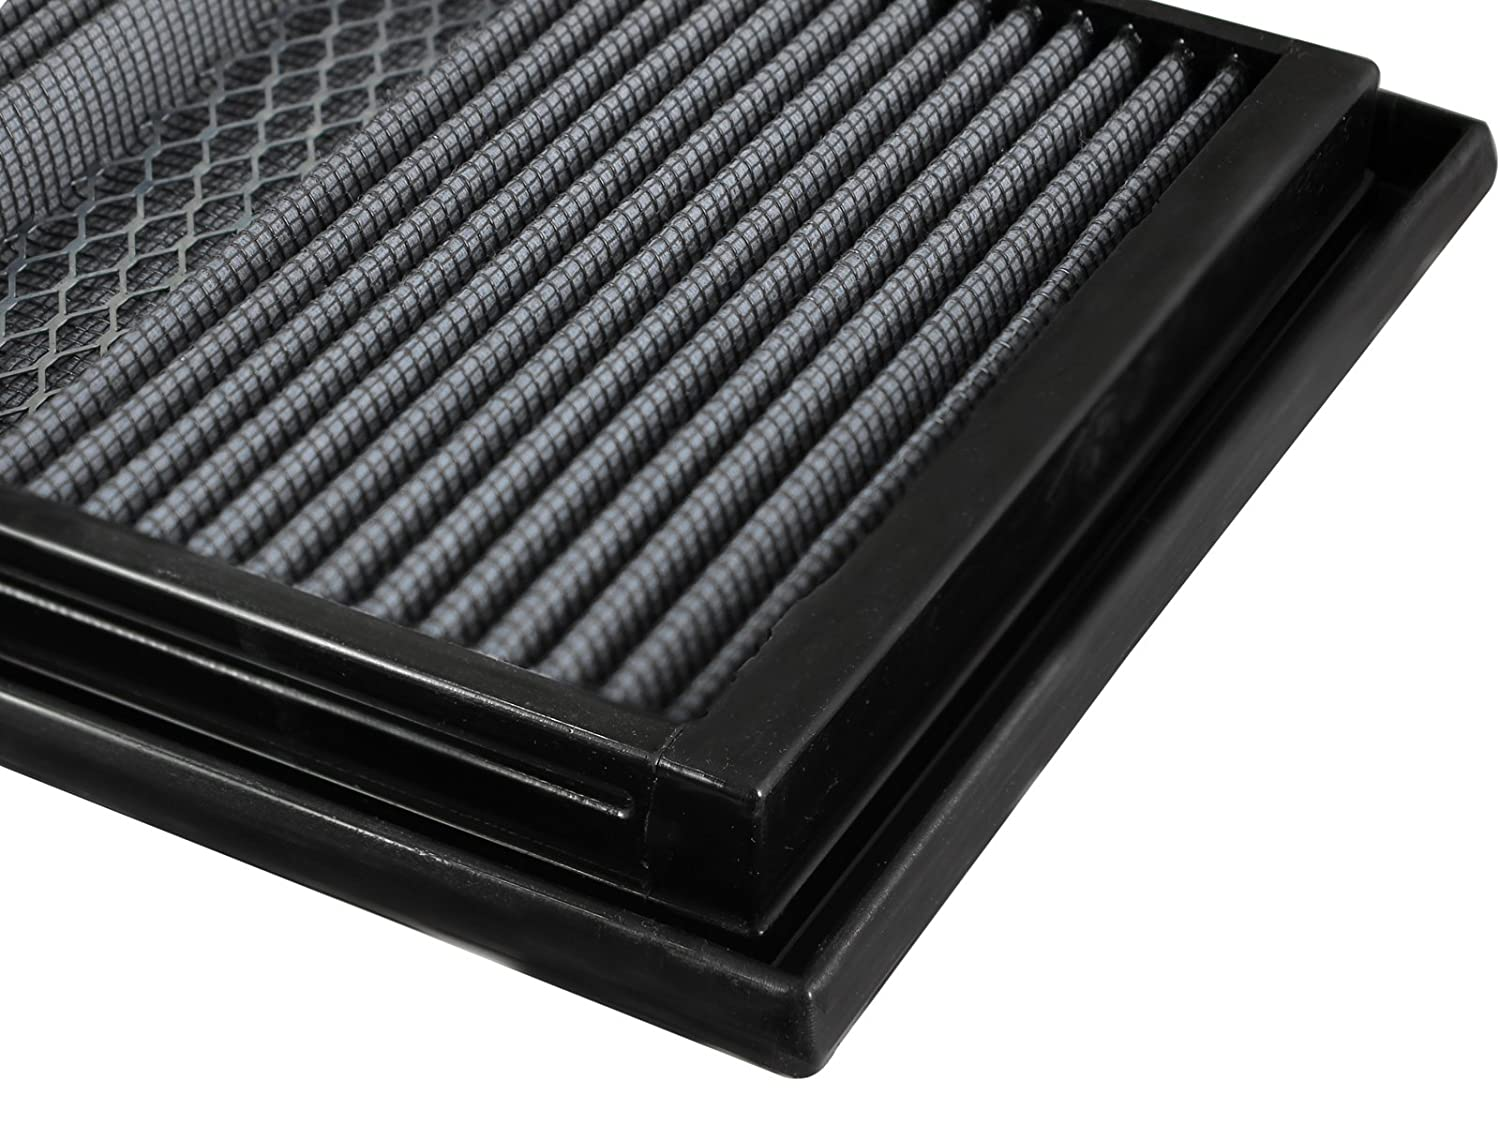 aFe 31-10250 Magnum FLOW Pro Dry OE Replacement Air Filter for Mercedes-Benz C//E//ML-Class V6-3.5L Engine